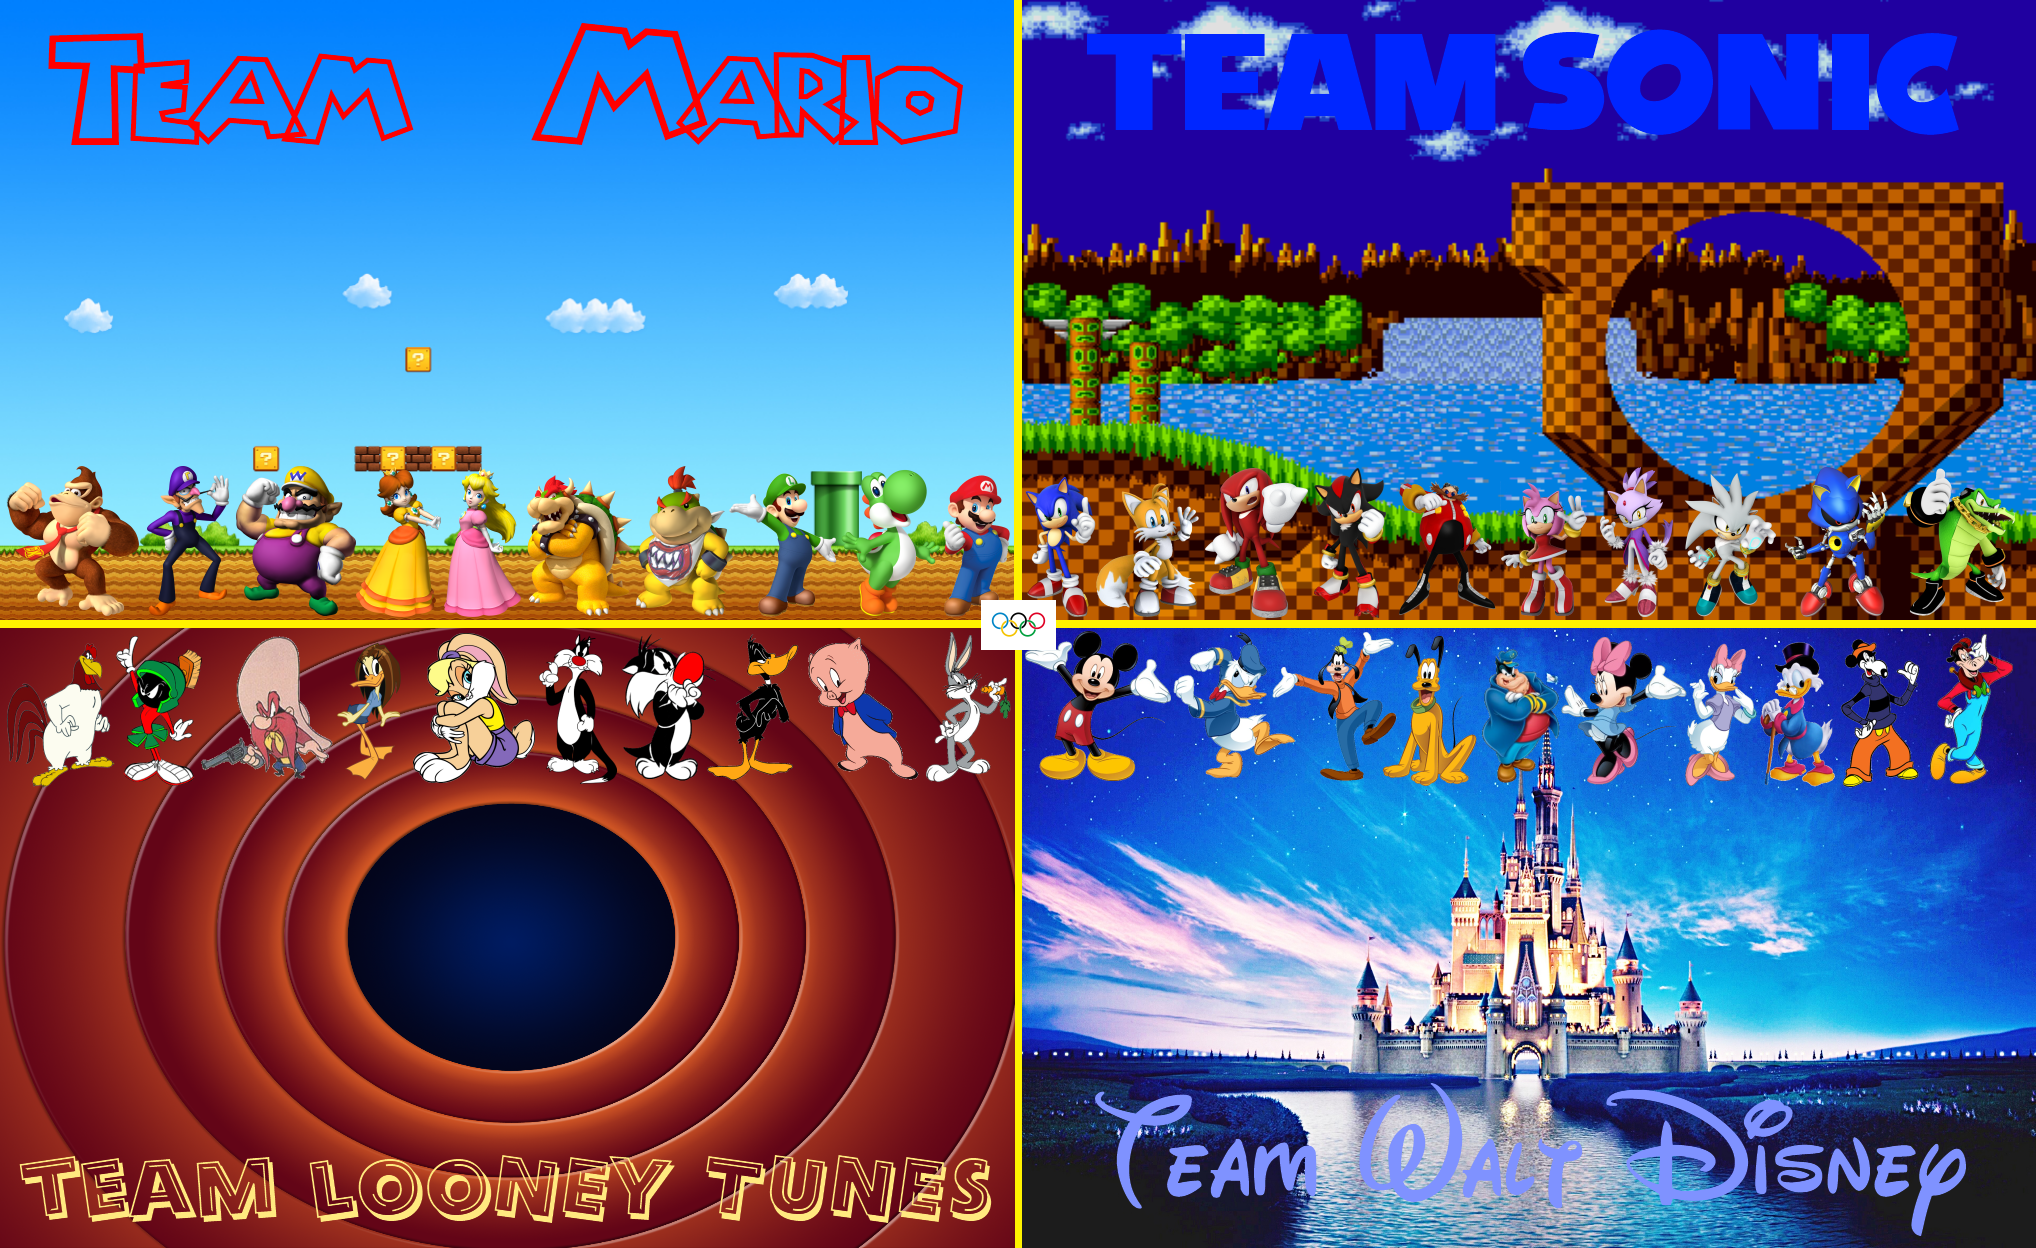 Mario Sonic Lt And Disney At The Olympics By Bvge On